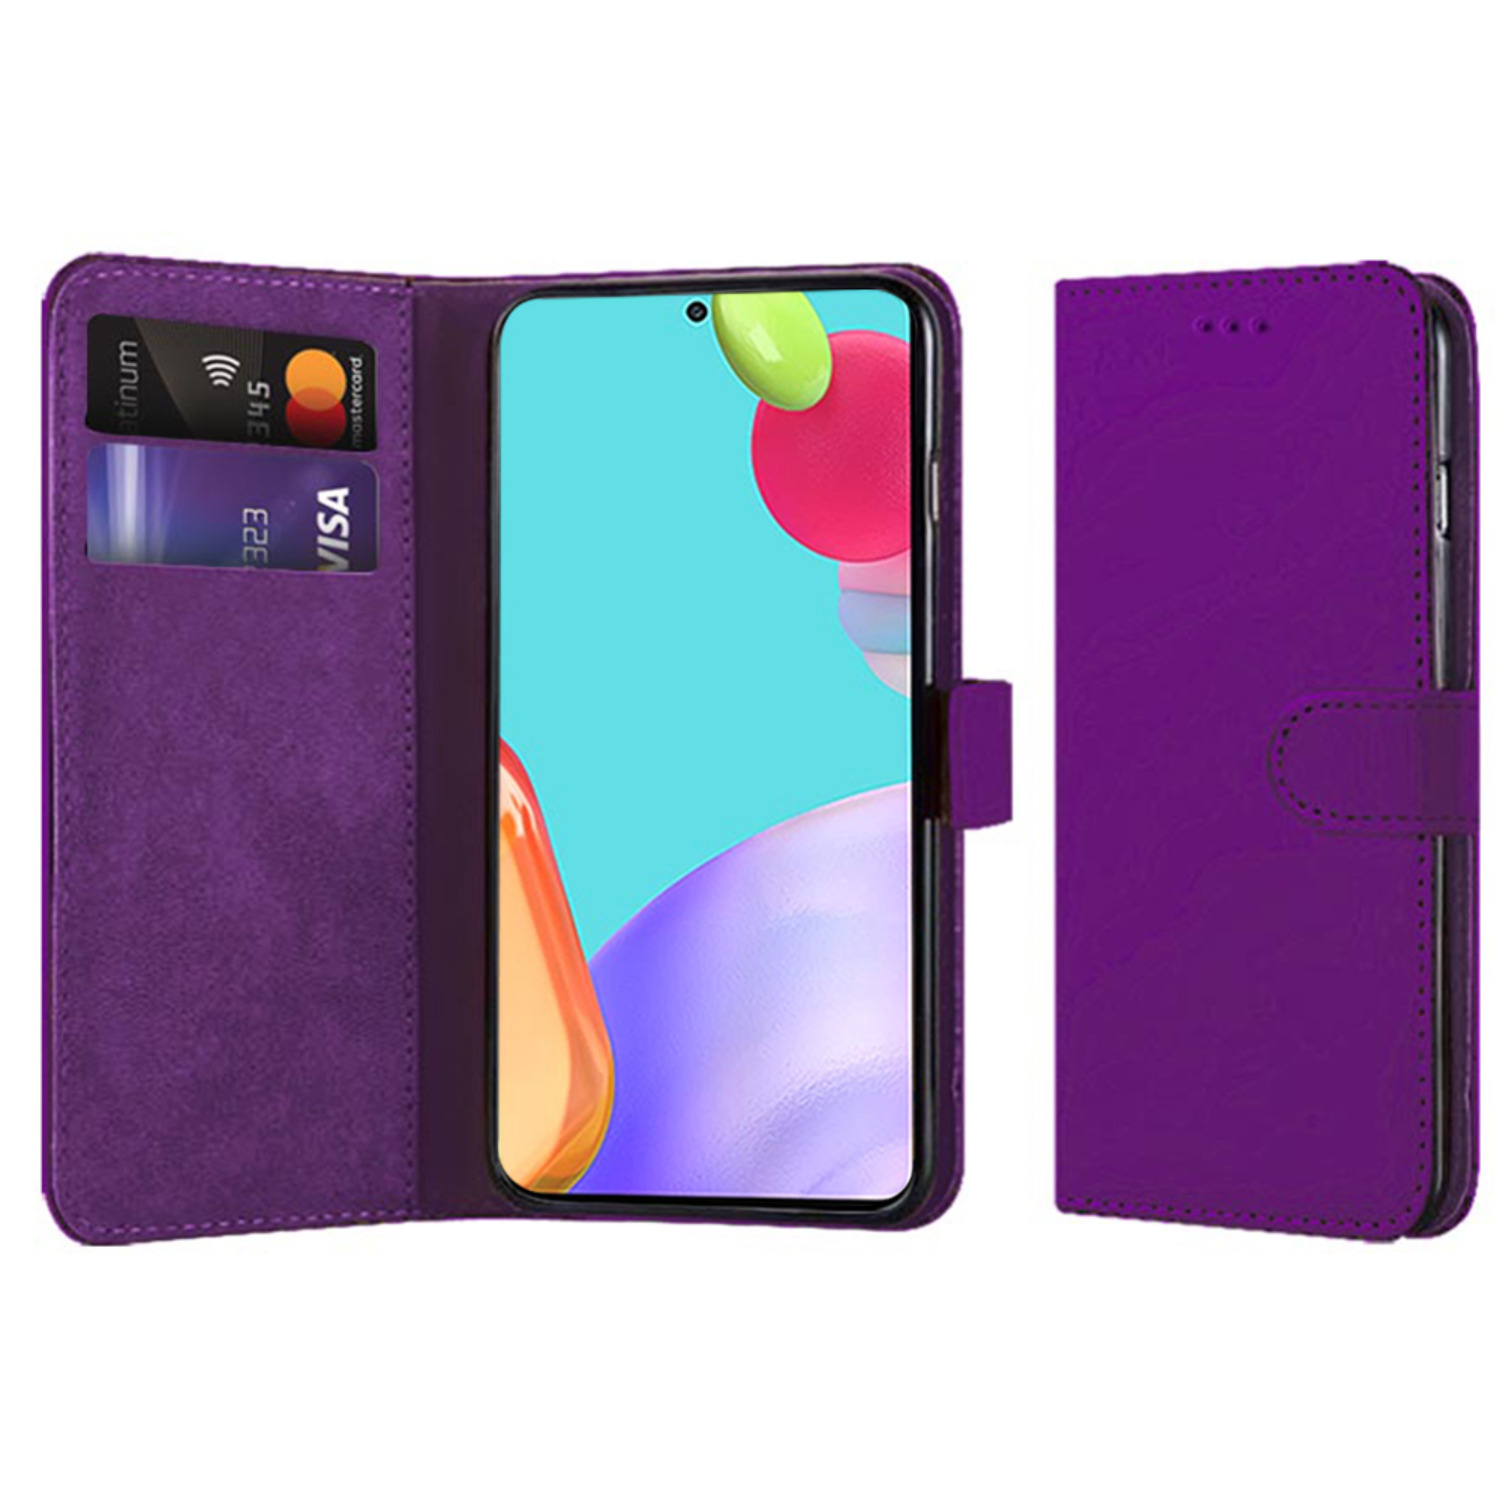 Samsung Galaxy A52 Compatible Book Case With Wallet Slot